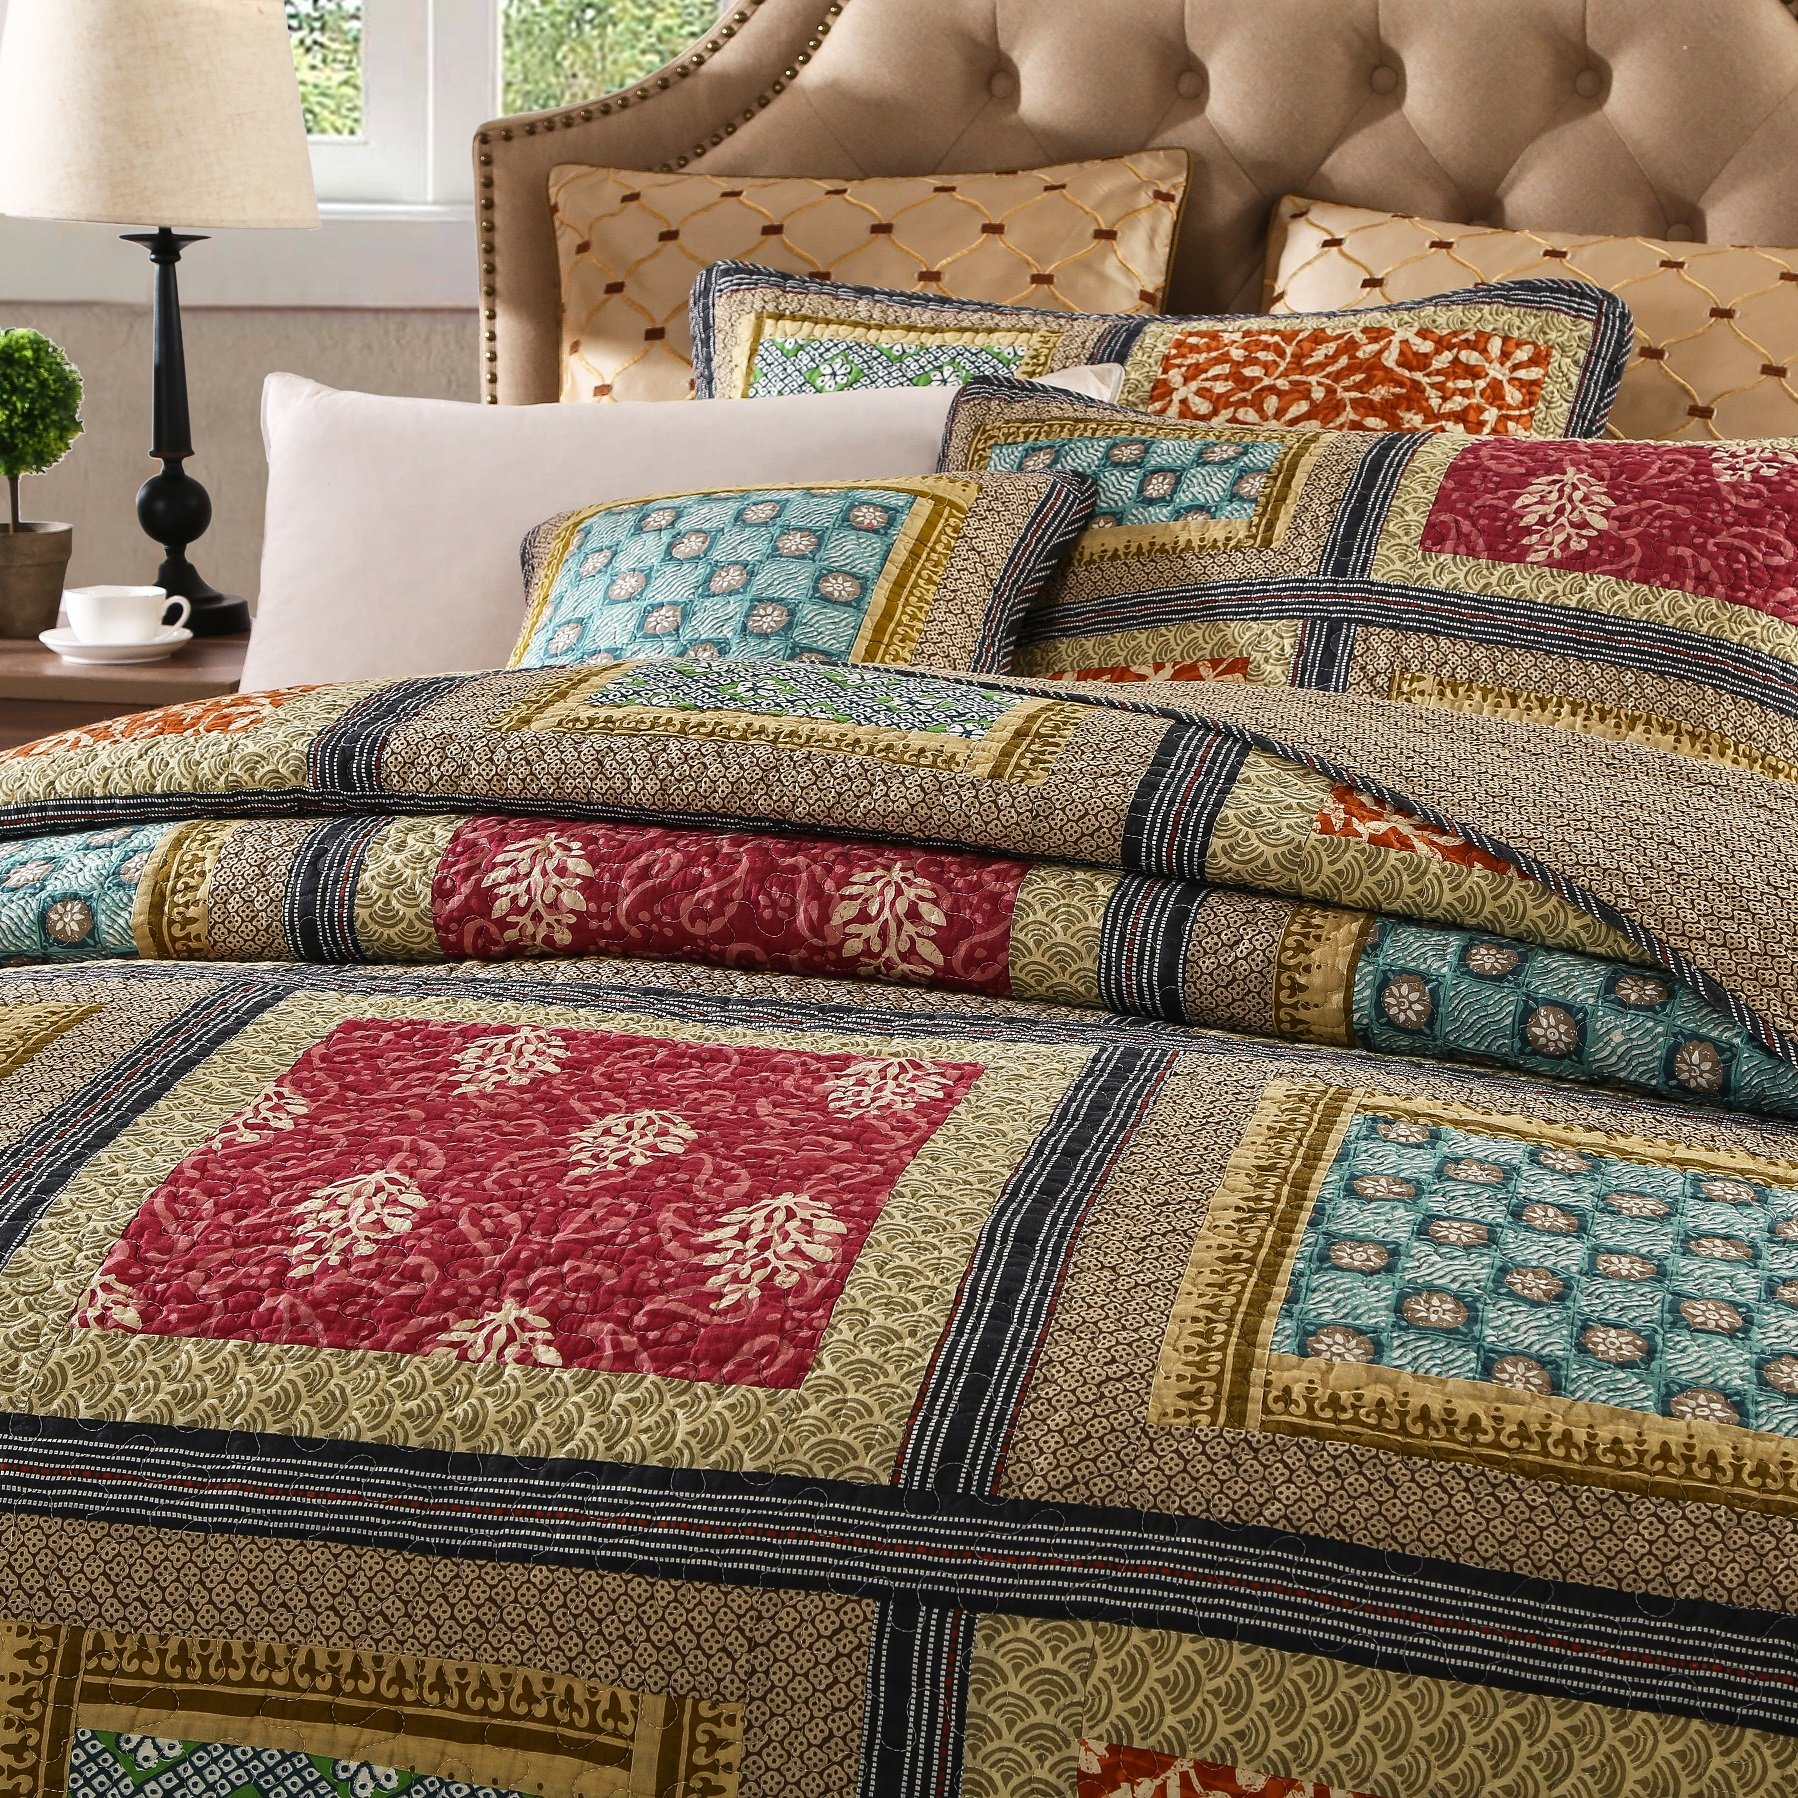 Dada Bedding Collection Reversible Bohemian Real Patchwork Gallery of Roses Cotton Quilt Bedspread Set, Multi-Colored, Cal King, 3-Pieces by DaDa Bedding Collection (Image #2)